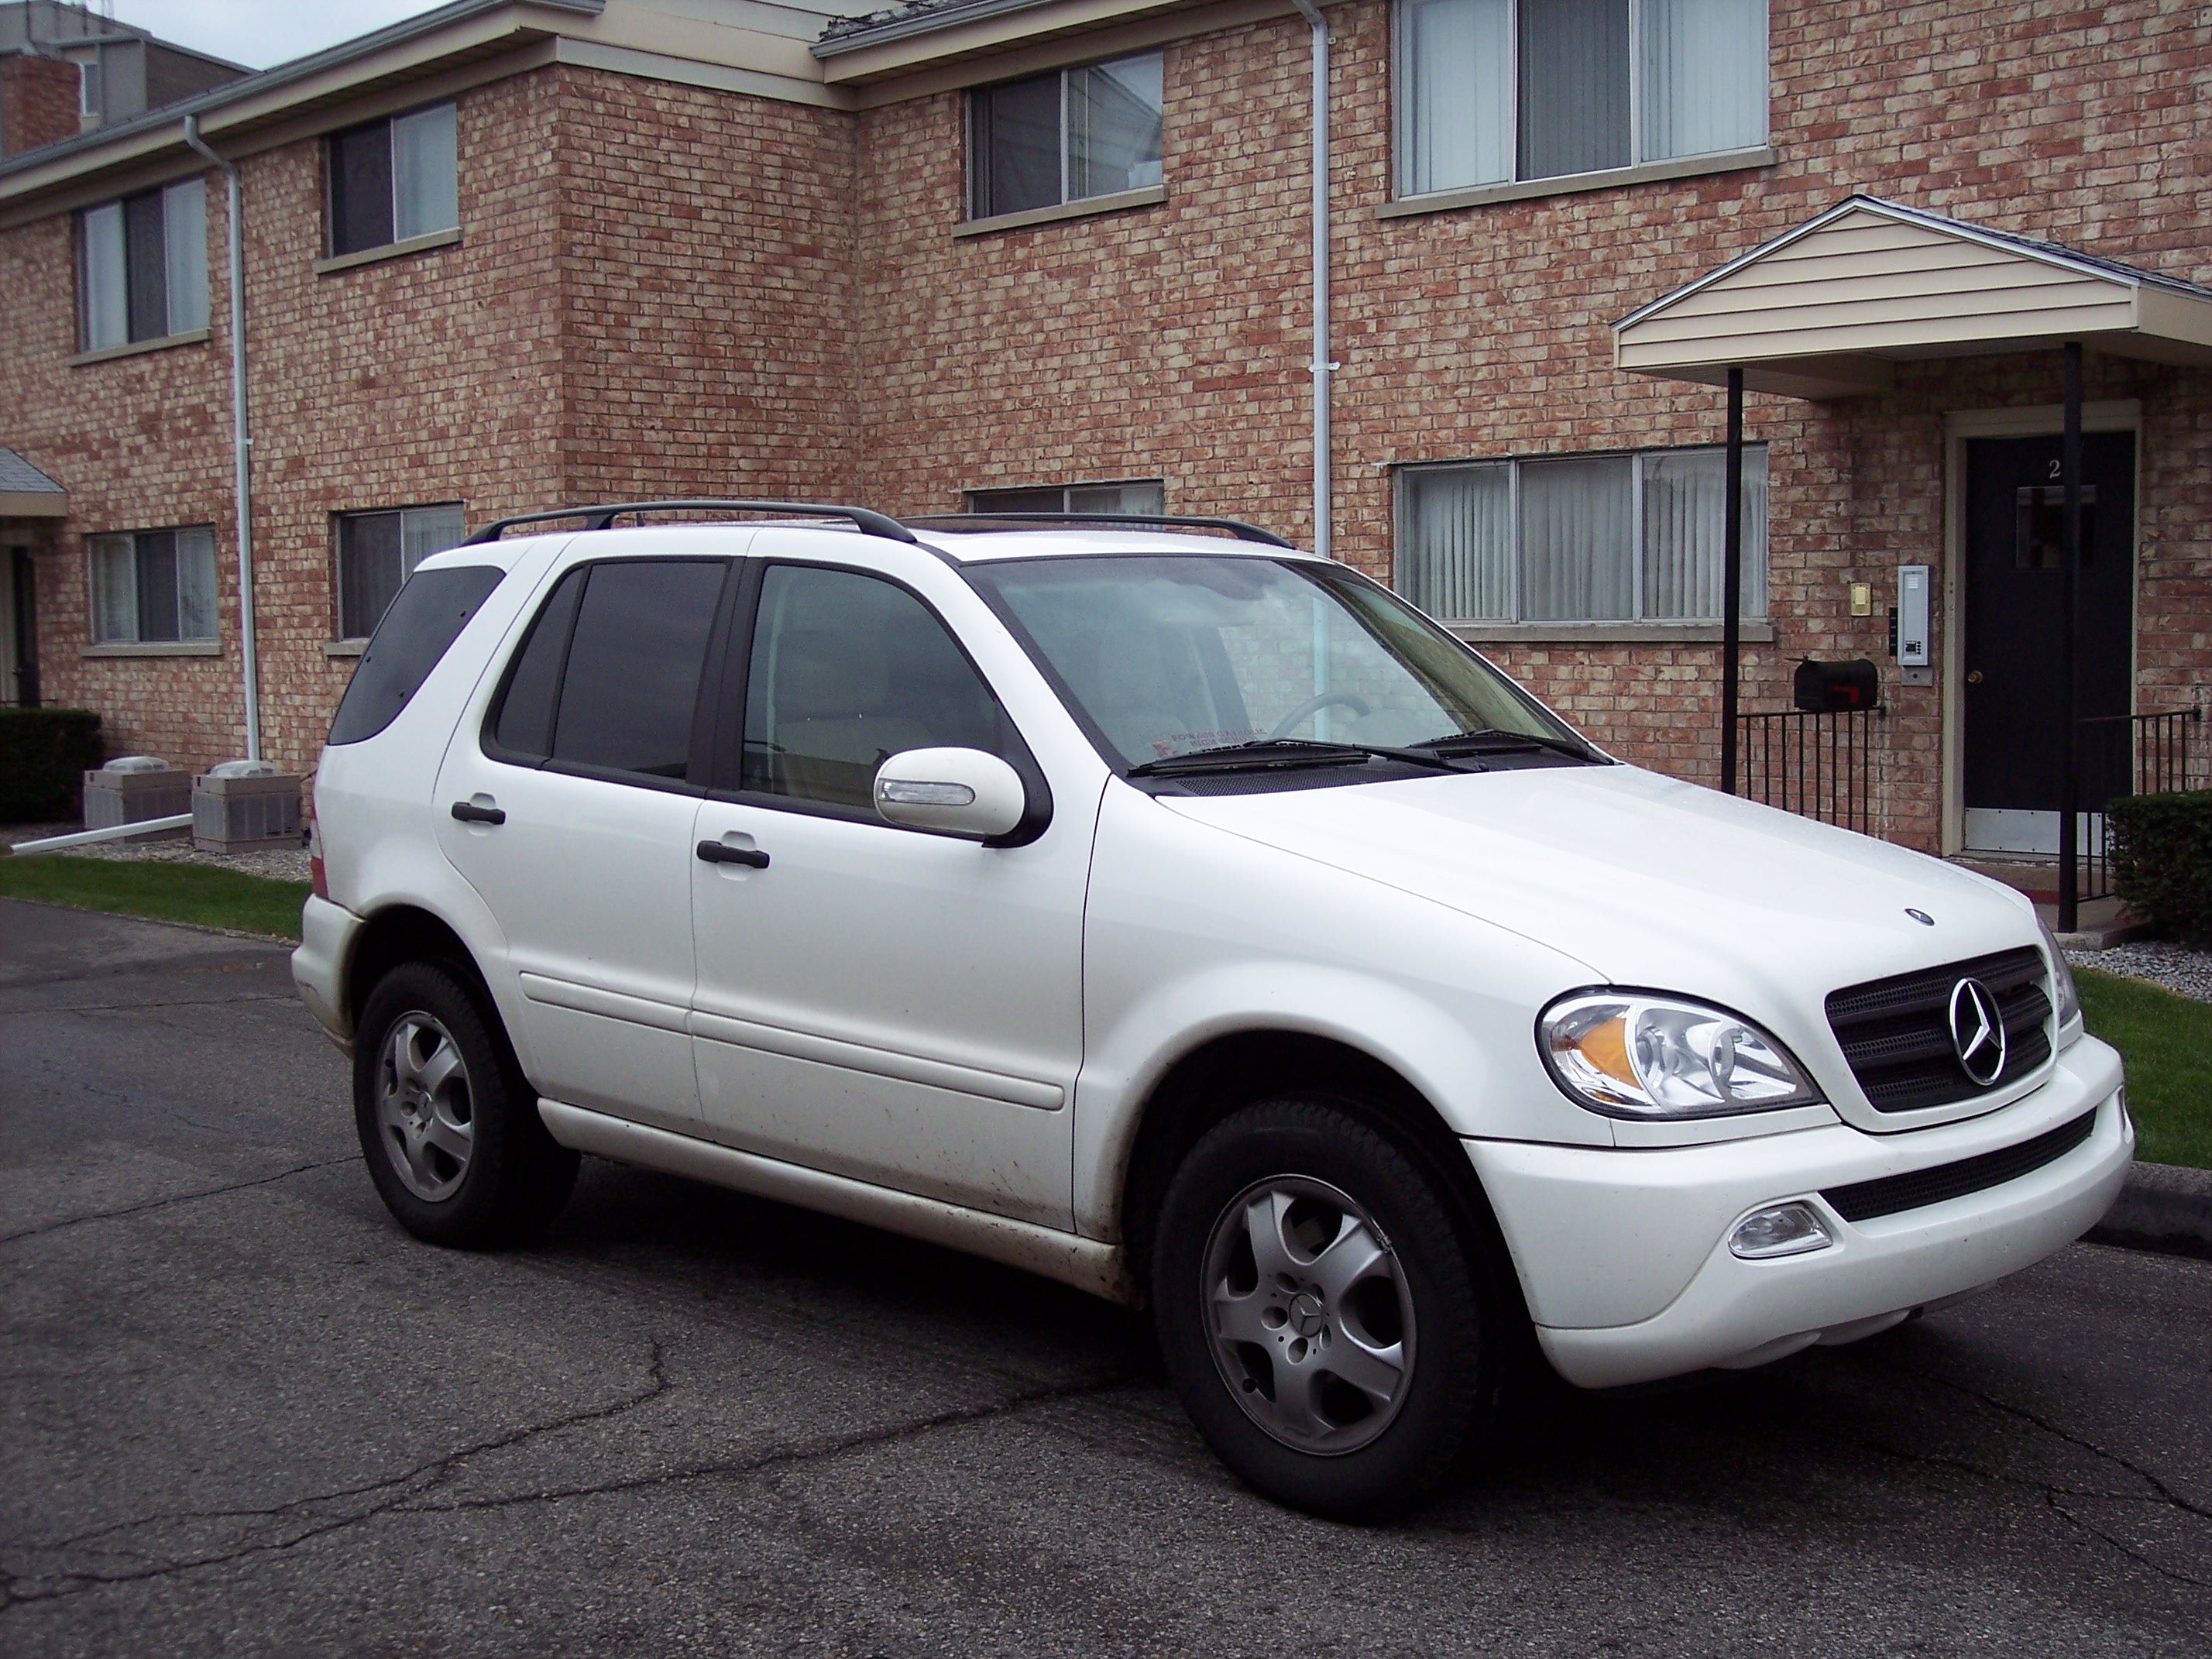 file mercedes benz ml350 wikipedia